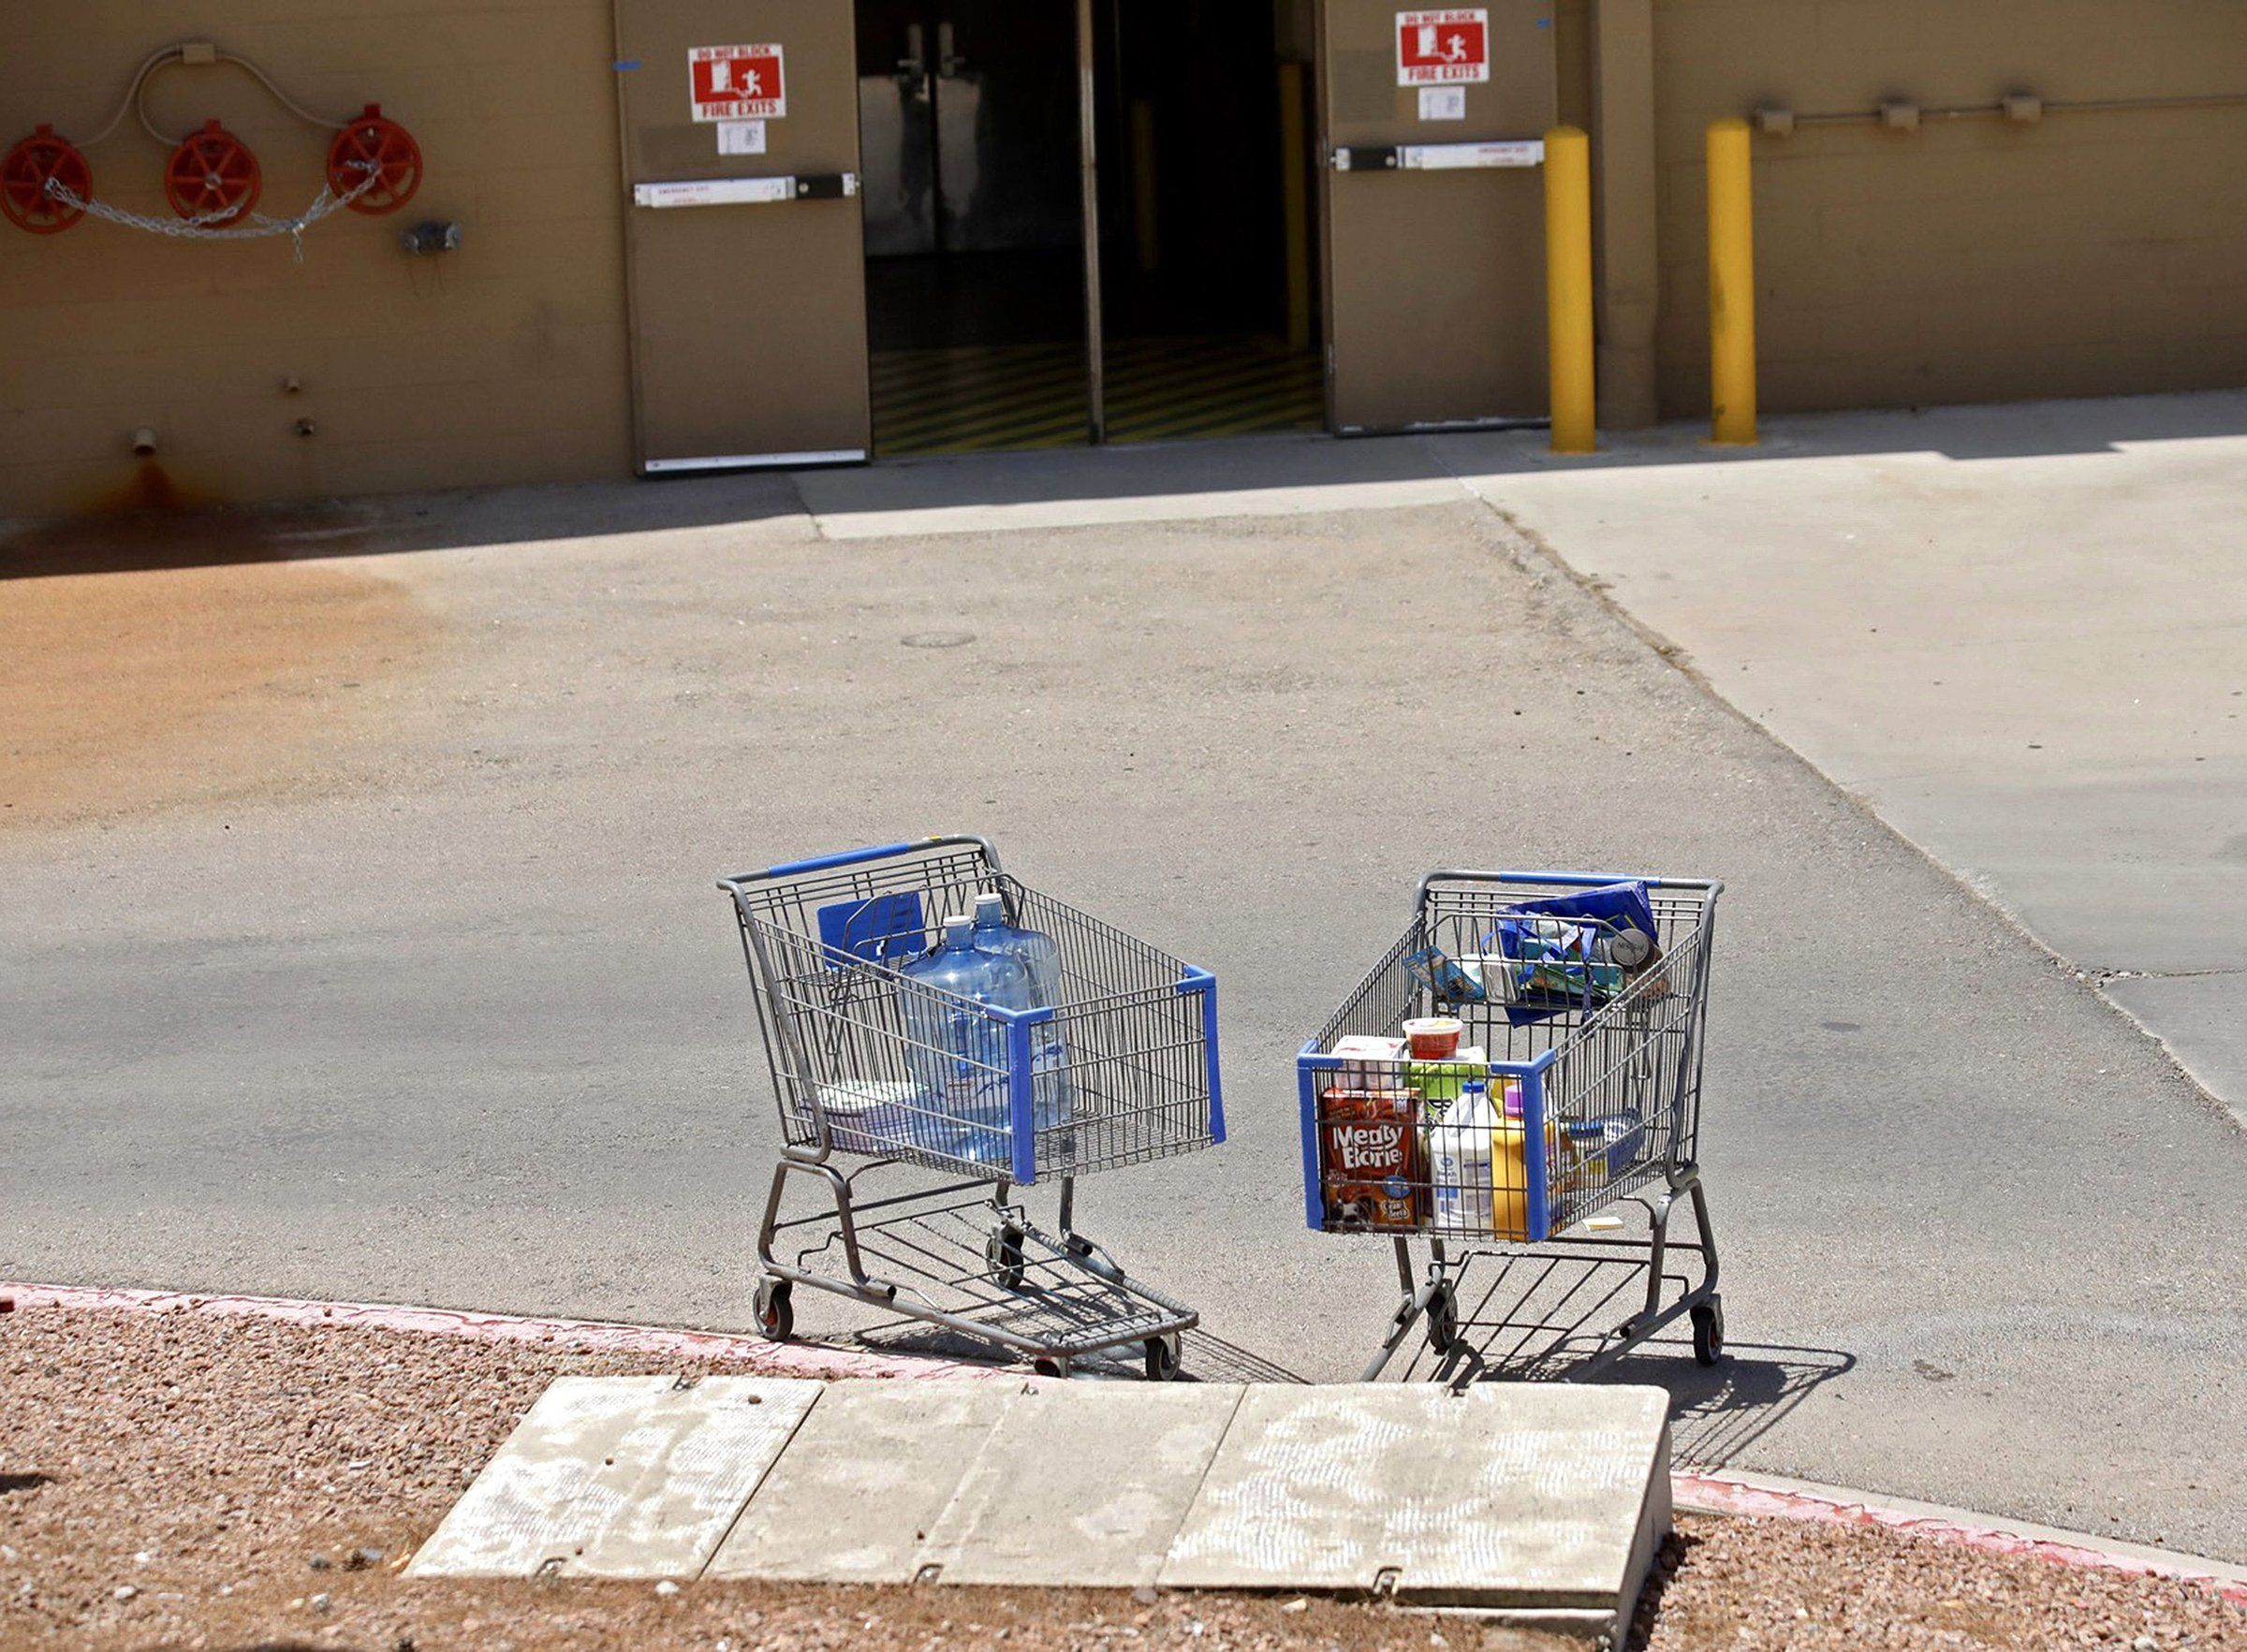 Shopping carts sit next to a curb after the mass shooting at a Walmart in El Paso on Aug. 3.